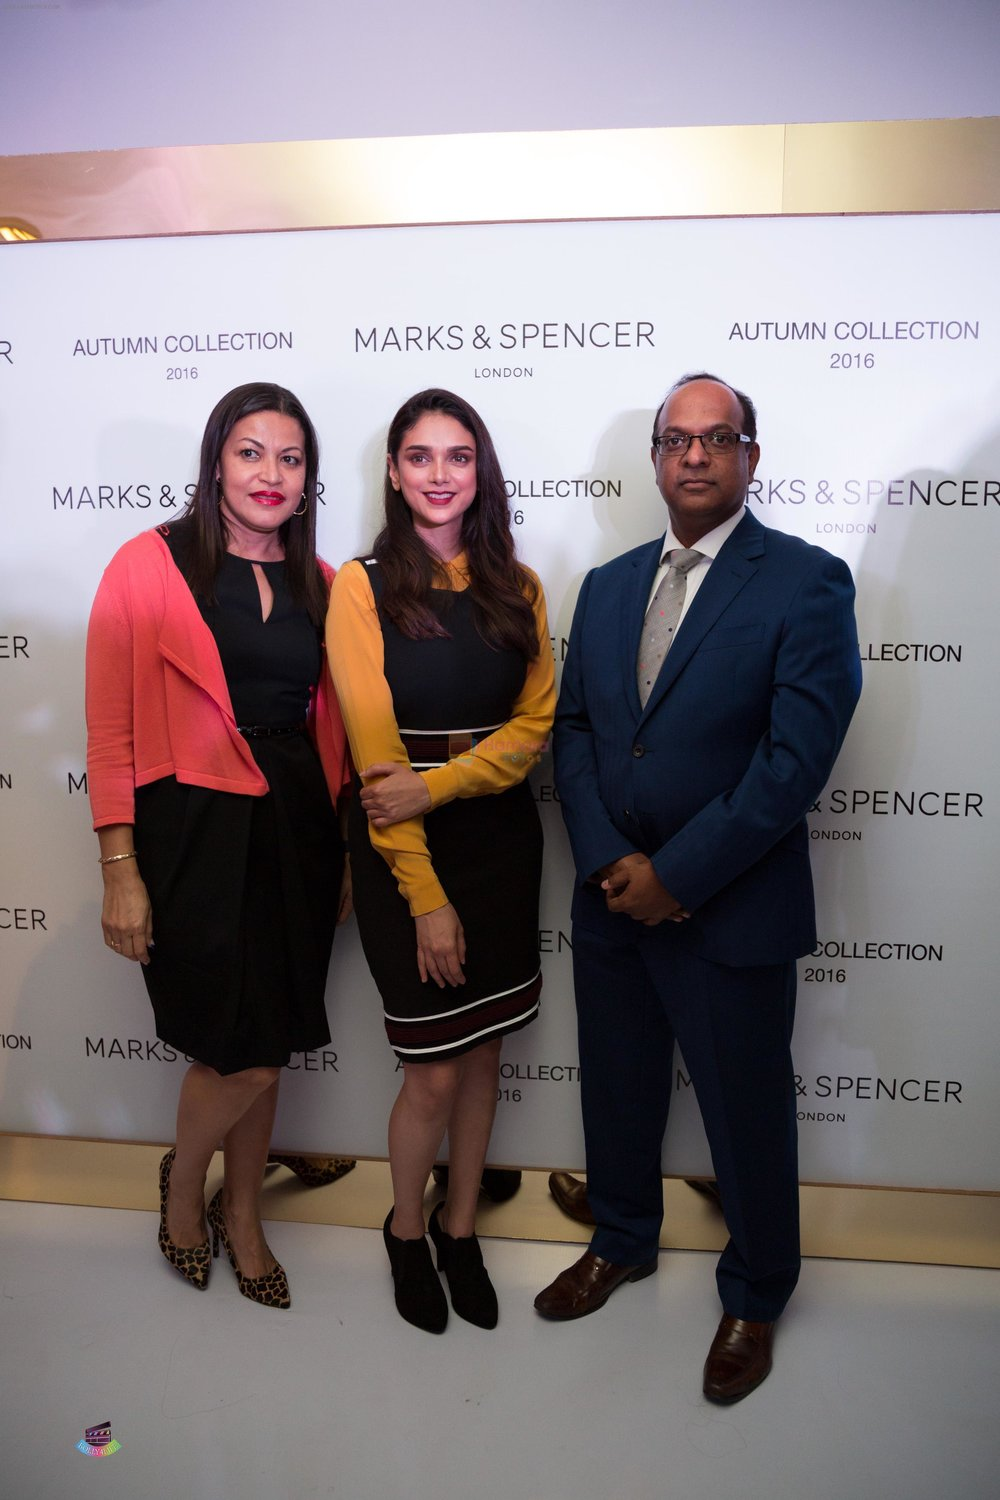 Thenny-MejiaAdit-Rao-Hydari-Venu-Nair-MD-Marks-Spencer-Reliance-India-at-the-Autumn-16-Launch-at-DLF-Mallof-India.jpg